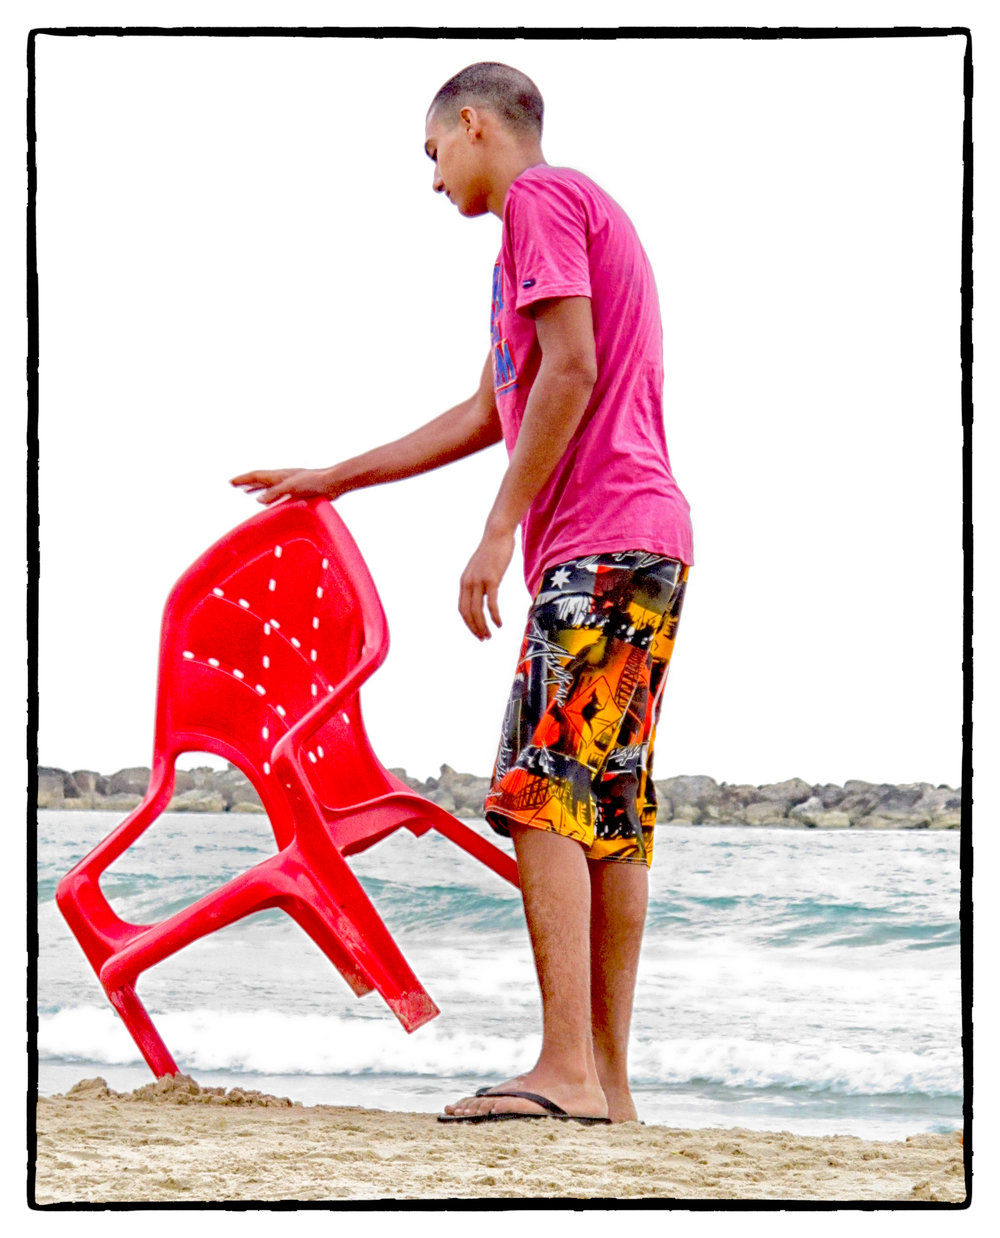 Red Chair, Pink Shirt